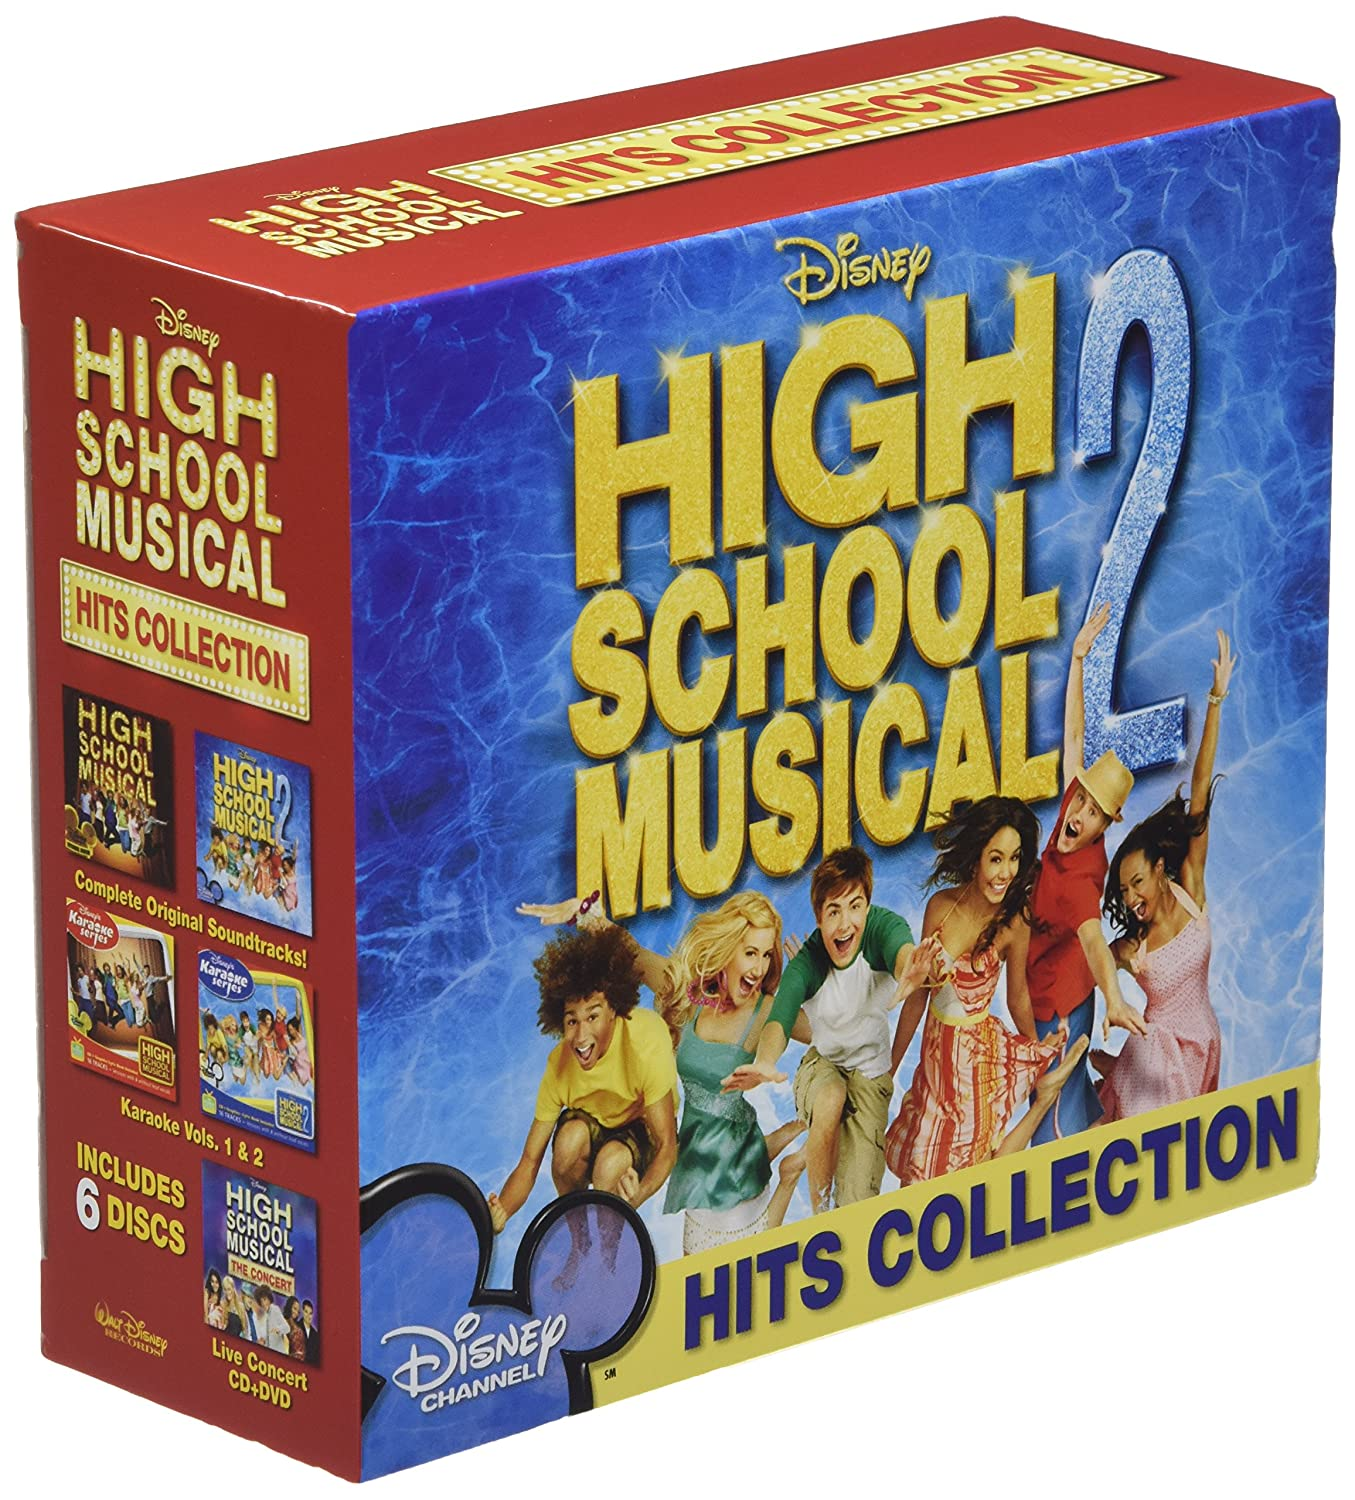 High School Musical Hits Collection